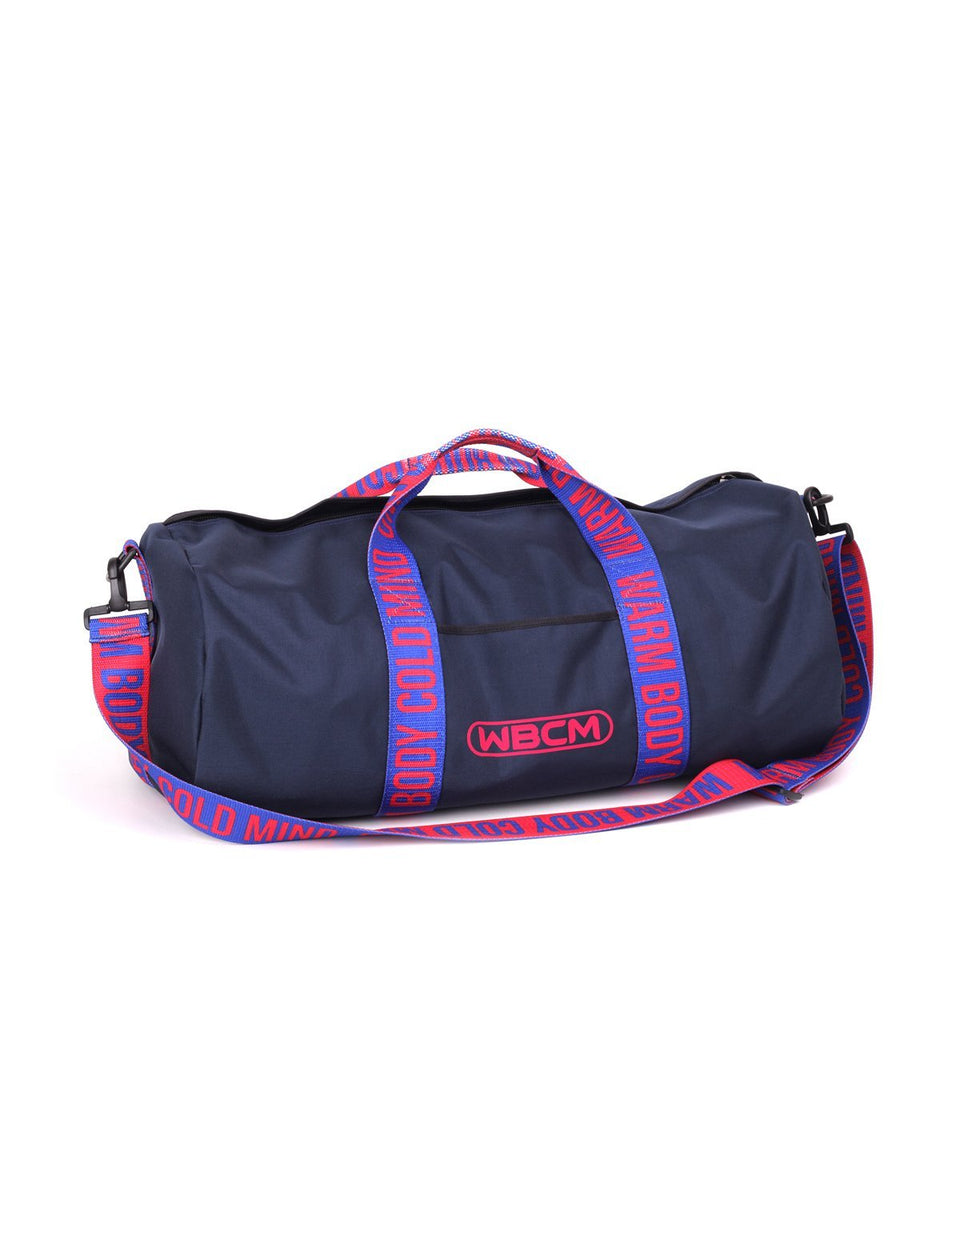 warm body cold mind Training Bag